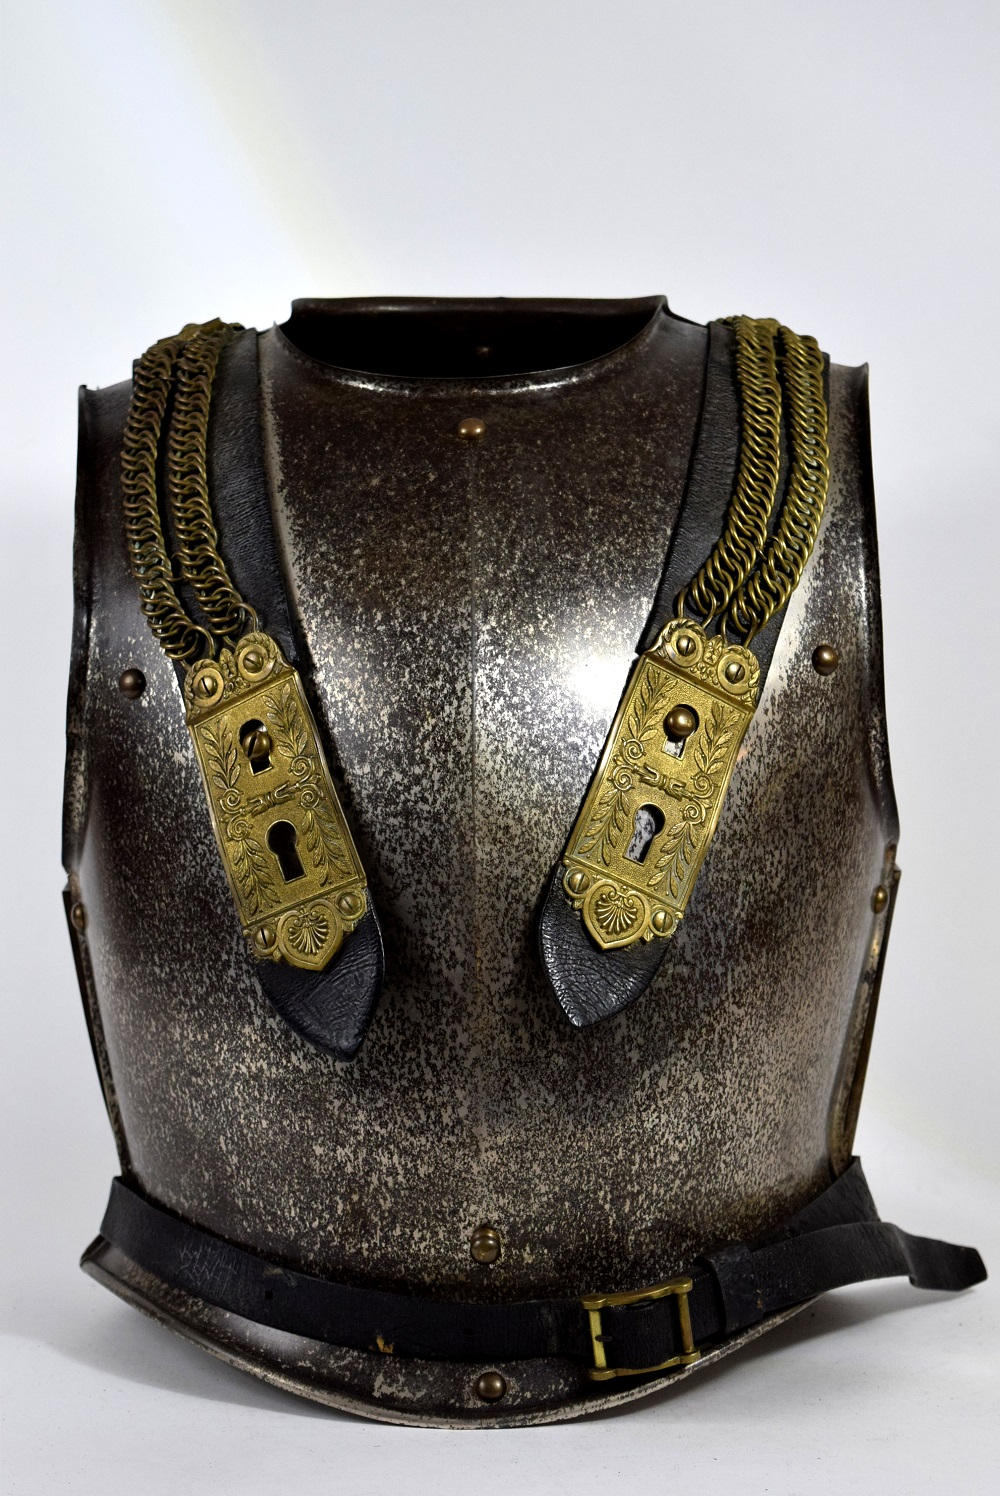 Nice Complete 19th C. French Cuirassier or Dragoon Officer's Cuirass Armor, Maker Marked & Numbered